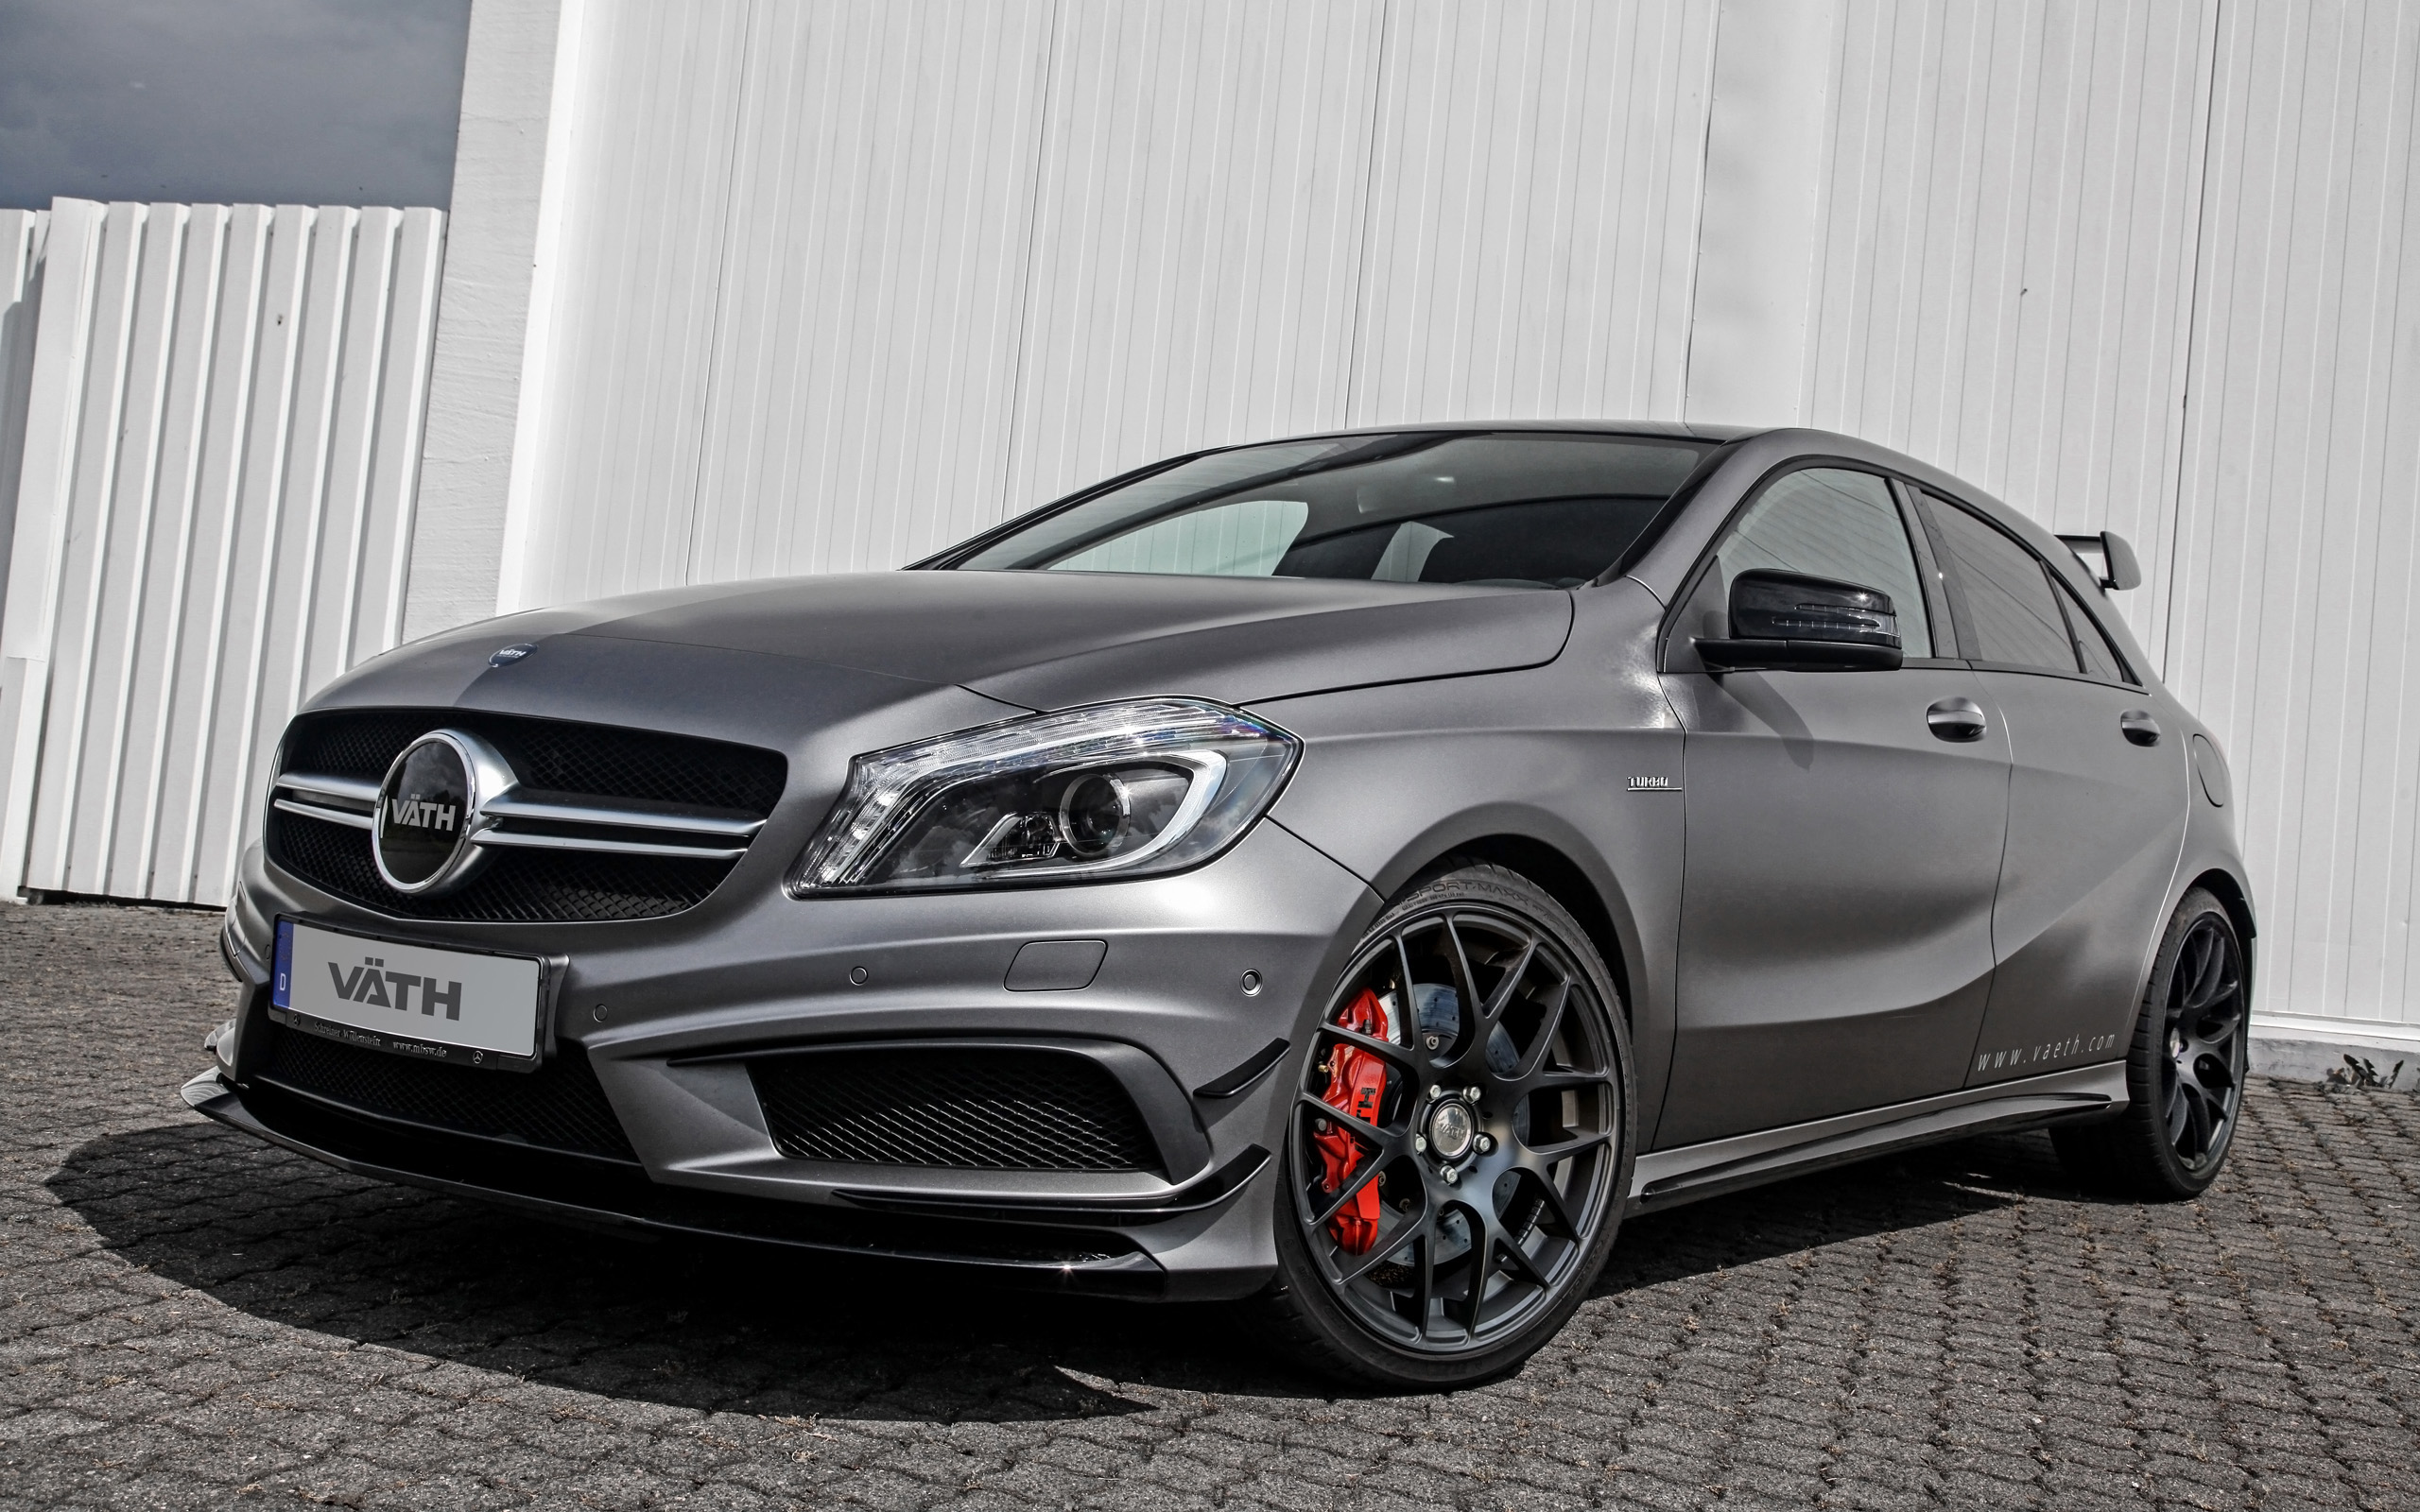 2014 Vaeth Mercedes Benz A45 AMG Wallpaper HD Car Wallpapers 2560x1600